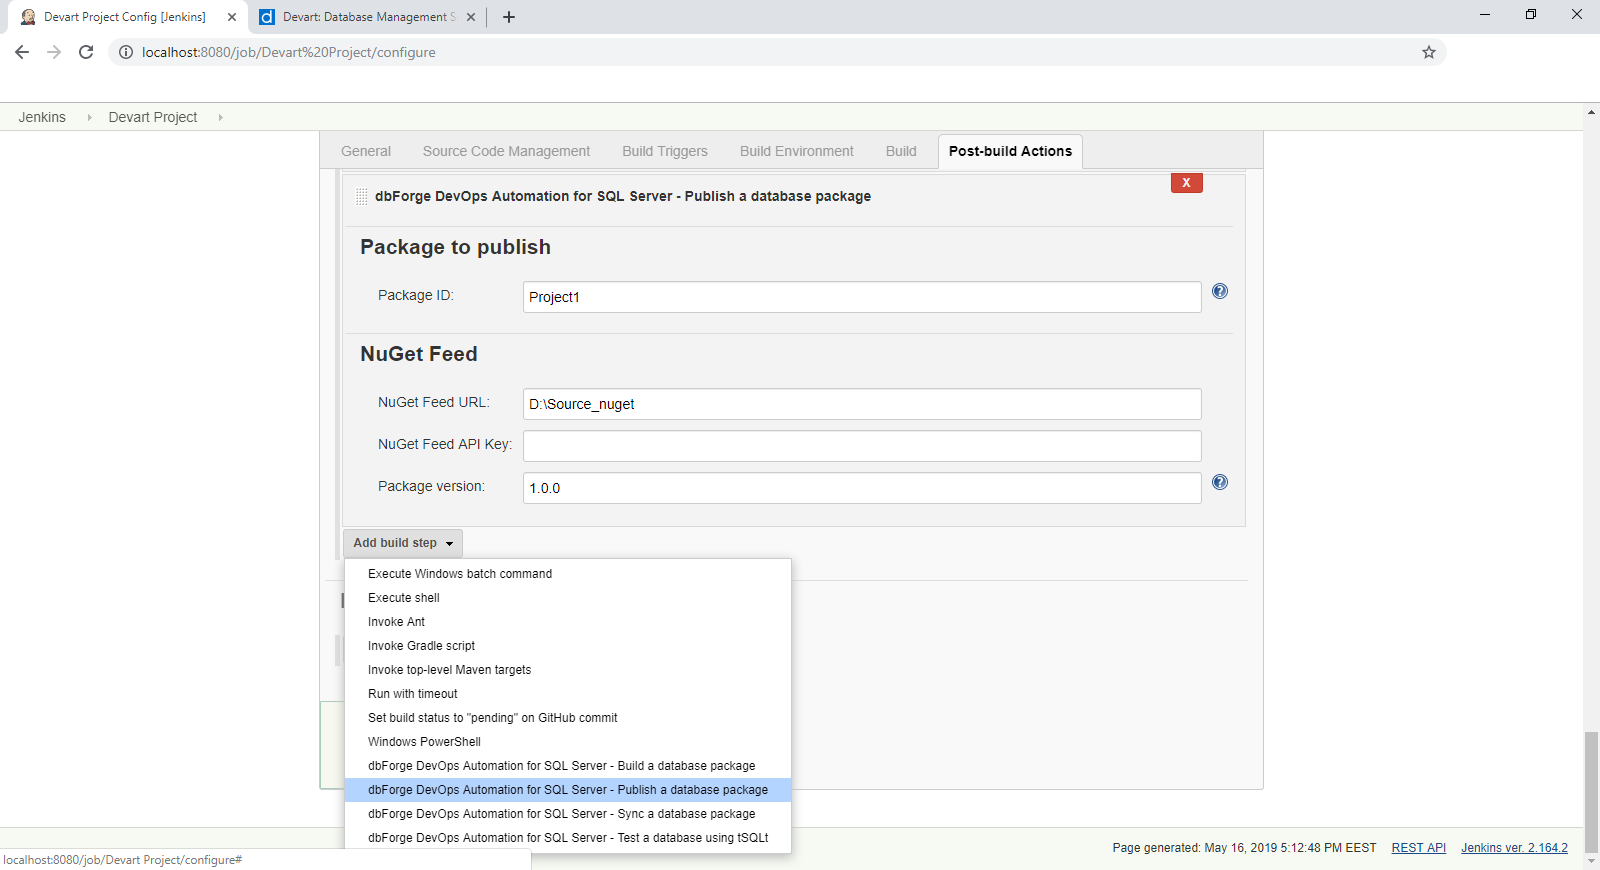 The open-source dbForge DevOps Automation for SQL Server Plugin can now be integrated into Jenkins